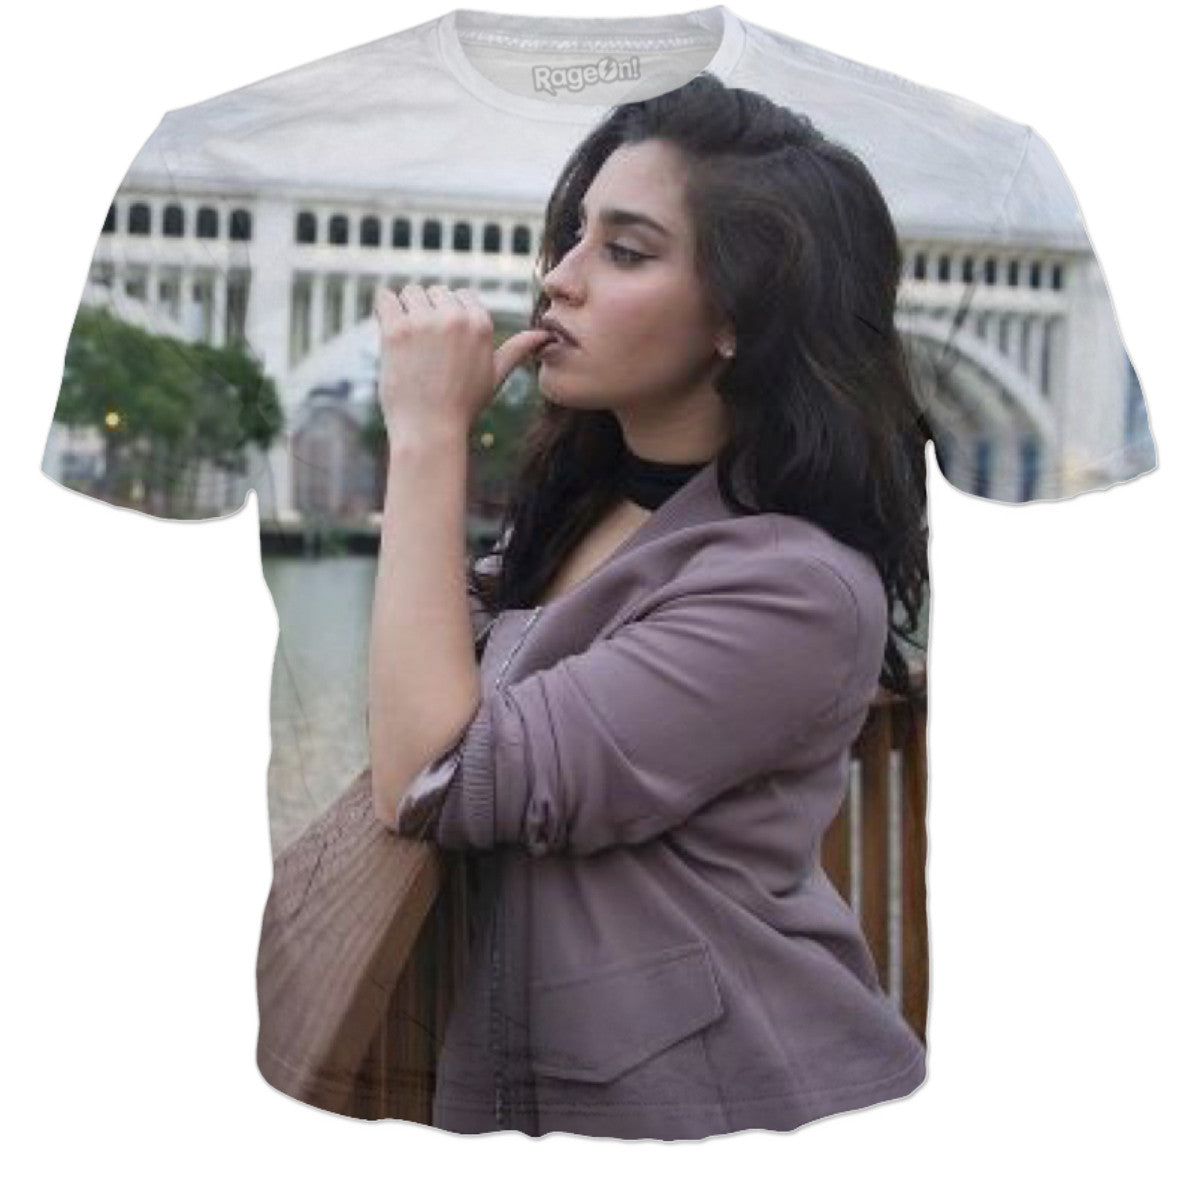 20f589167fc47b https://www.rageon.com/products/sweet-patron-chil-island-wave 2019 ...